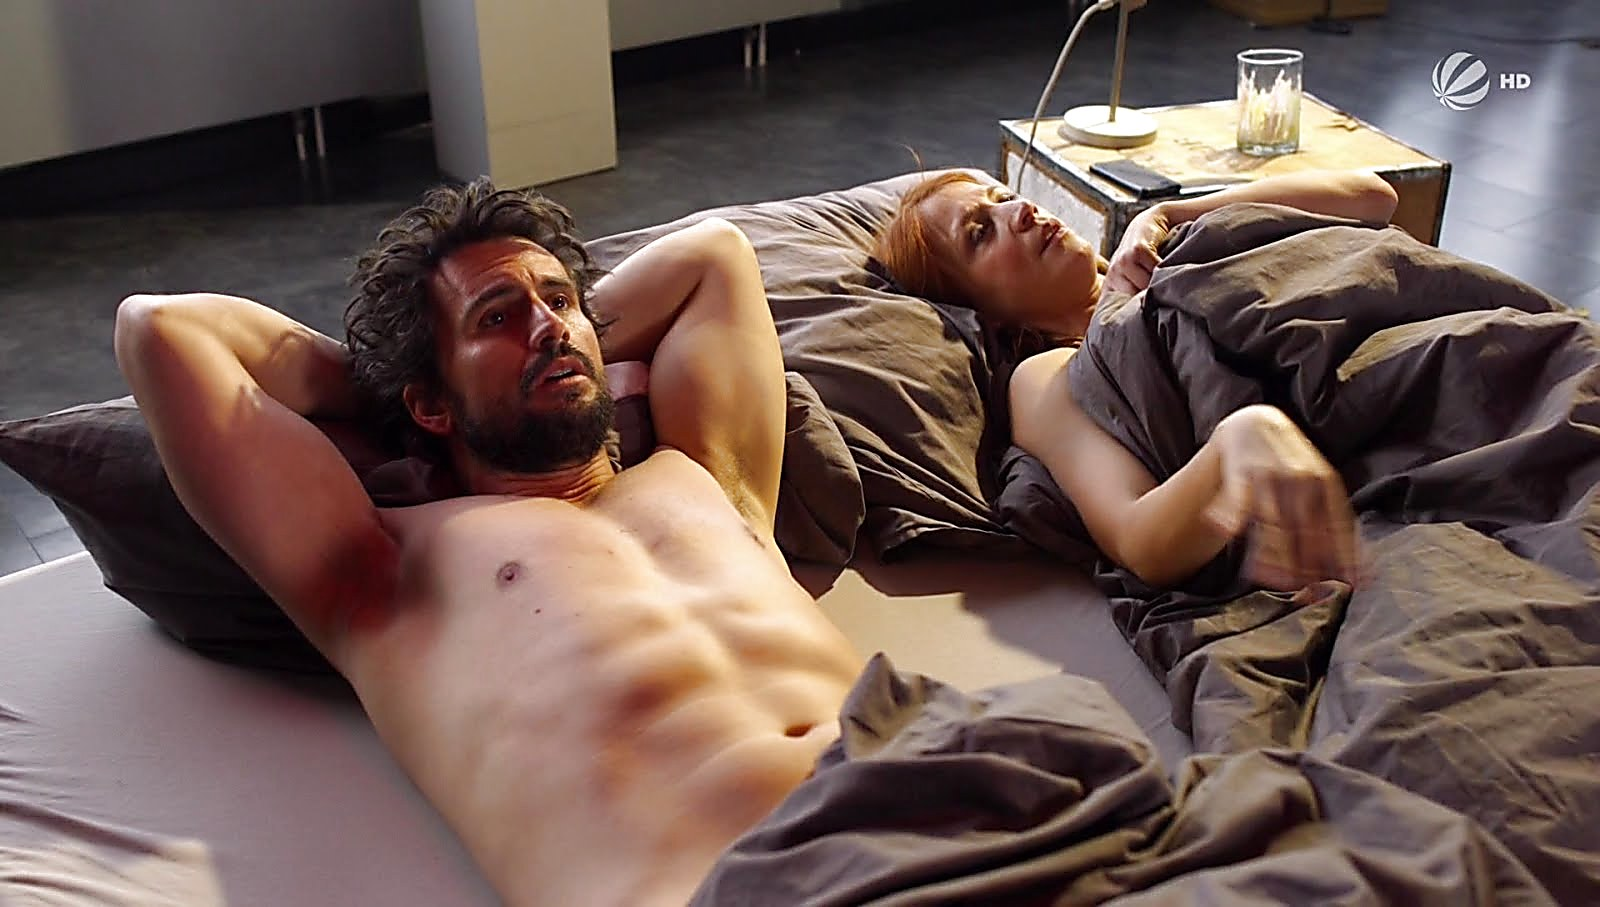 Tom Beck sexy shirtless scene March 18, 2018, 1pm